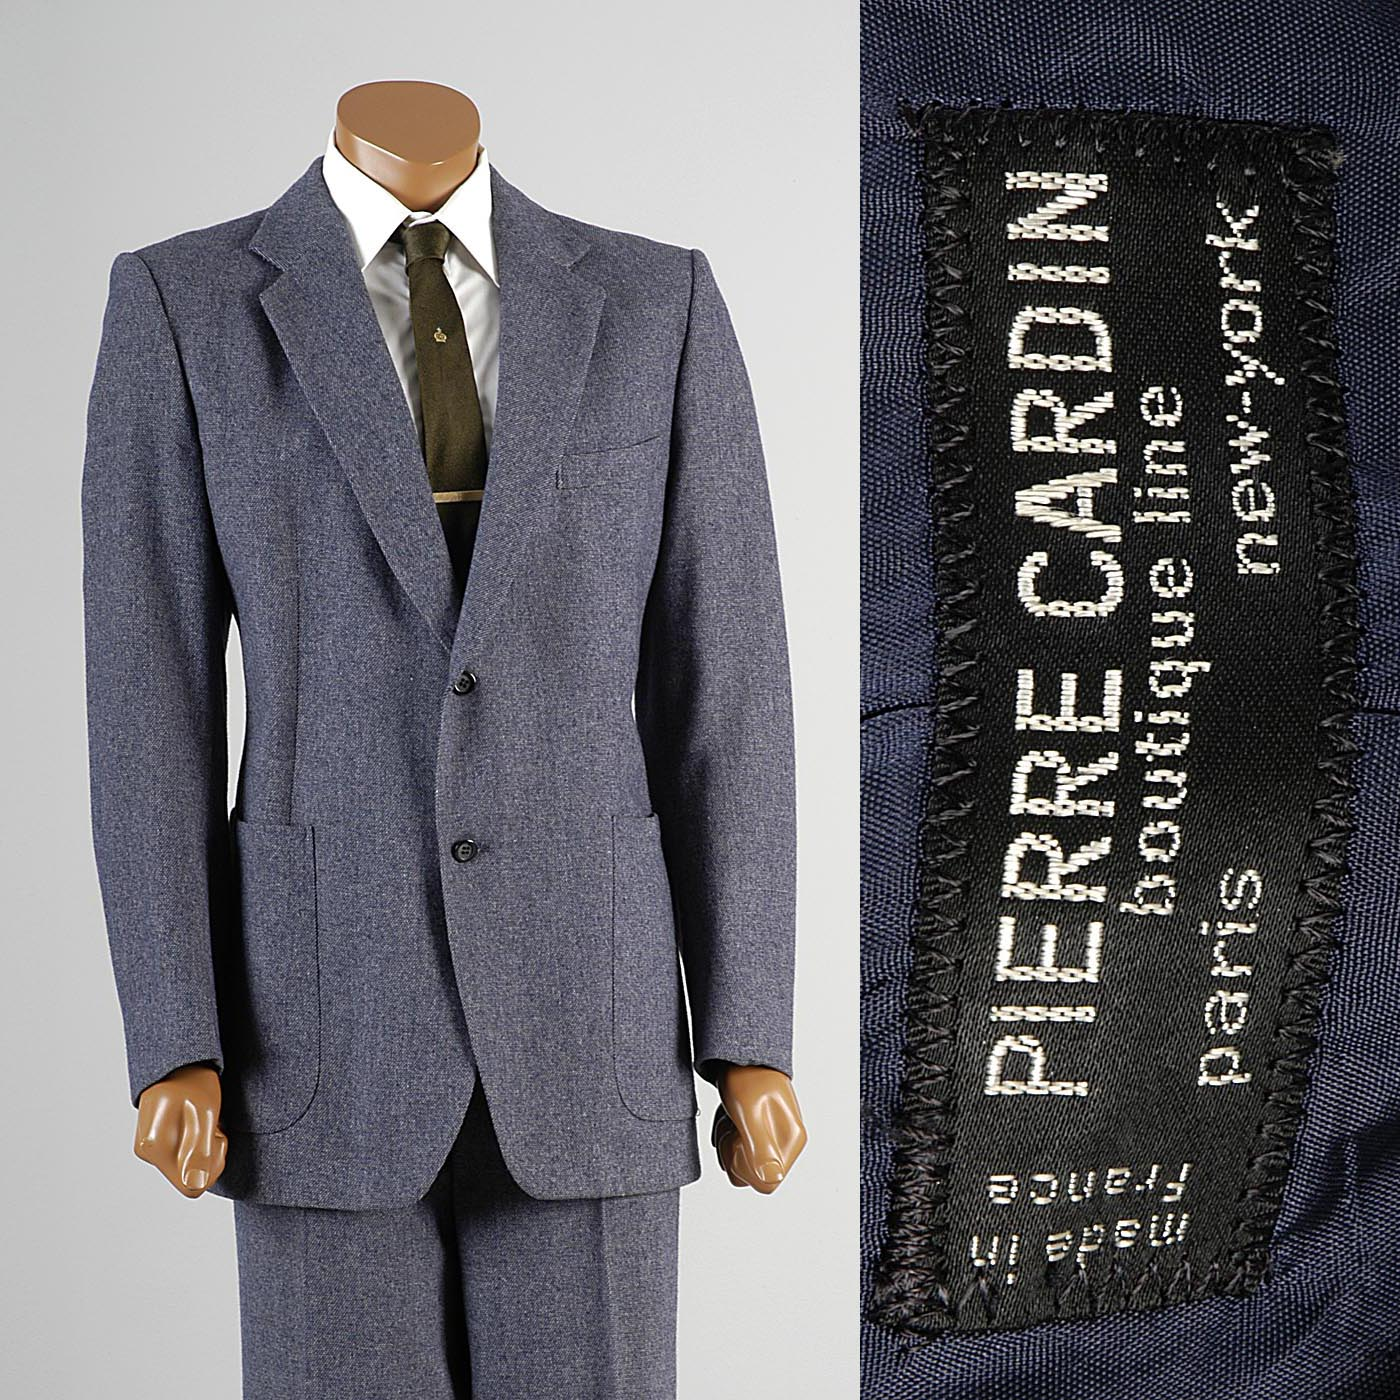 1970s Men's Pierre Cardin Black Label Blue & White Wool Tweed Suit